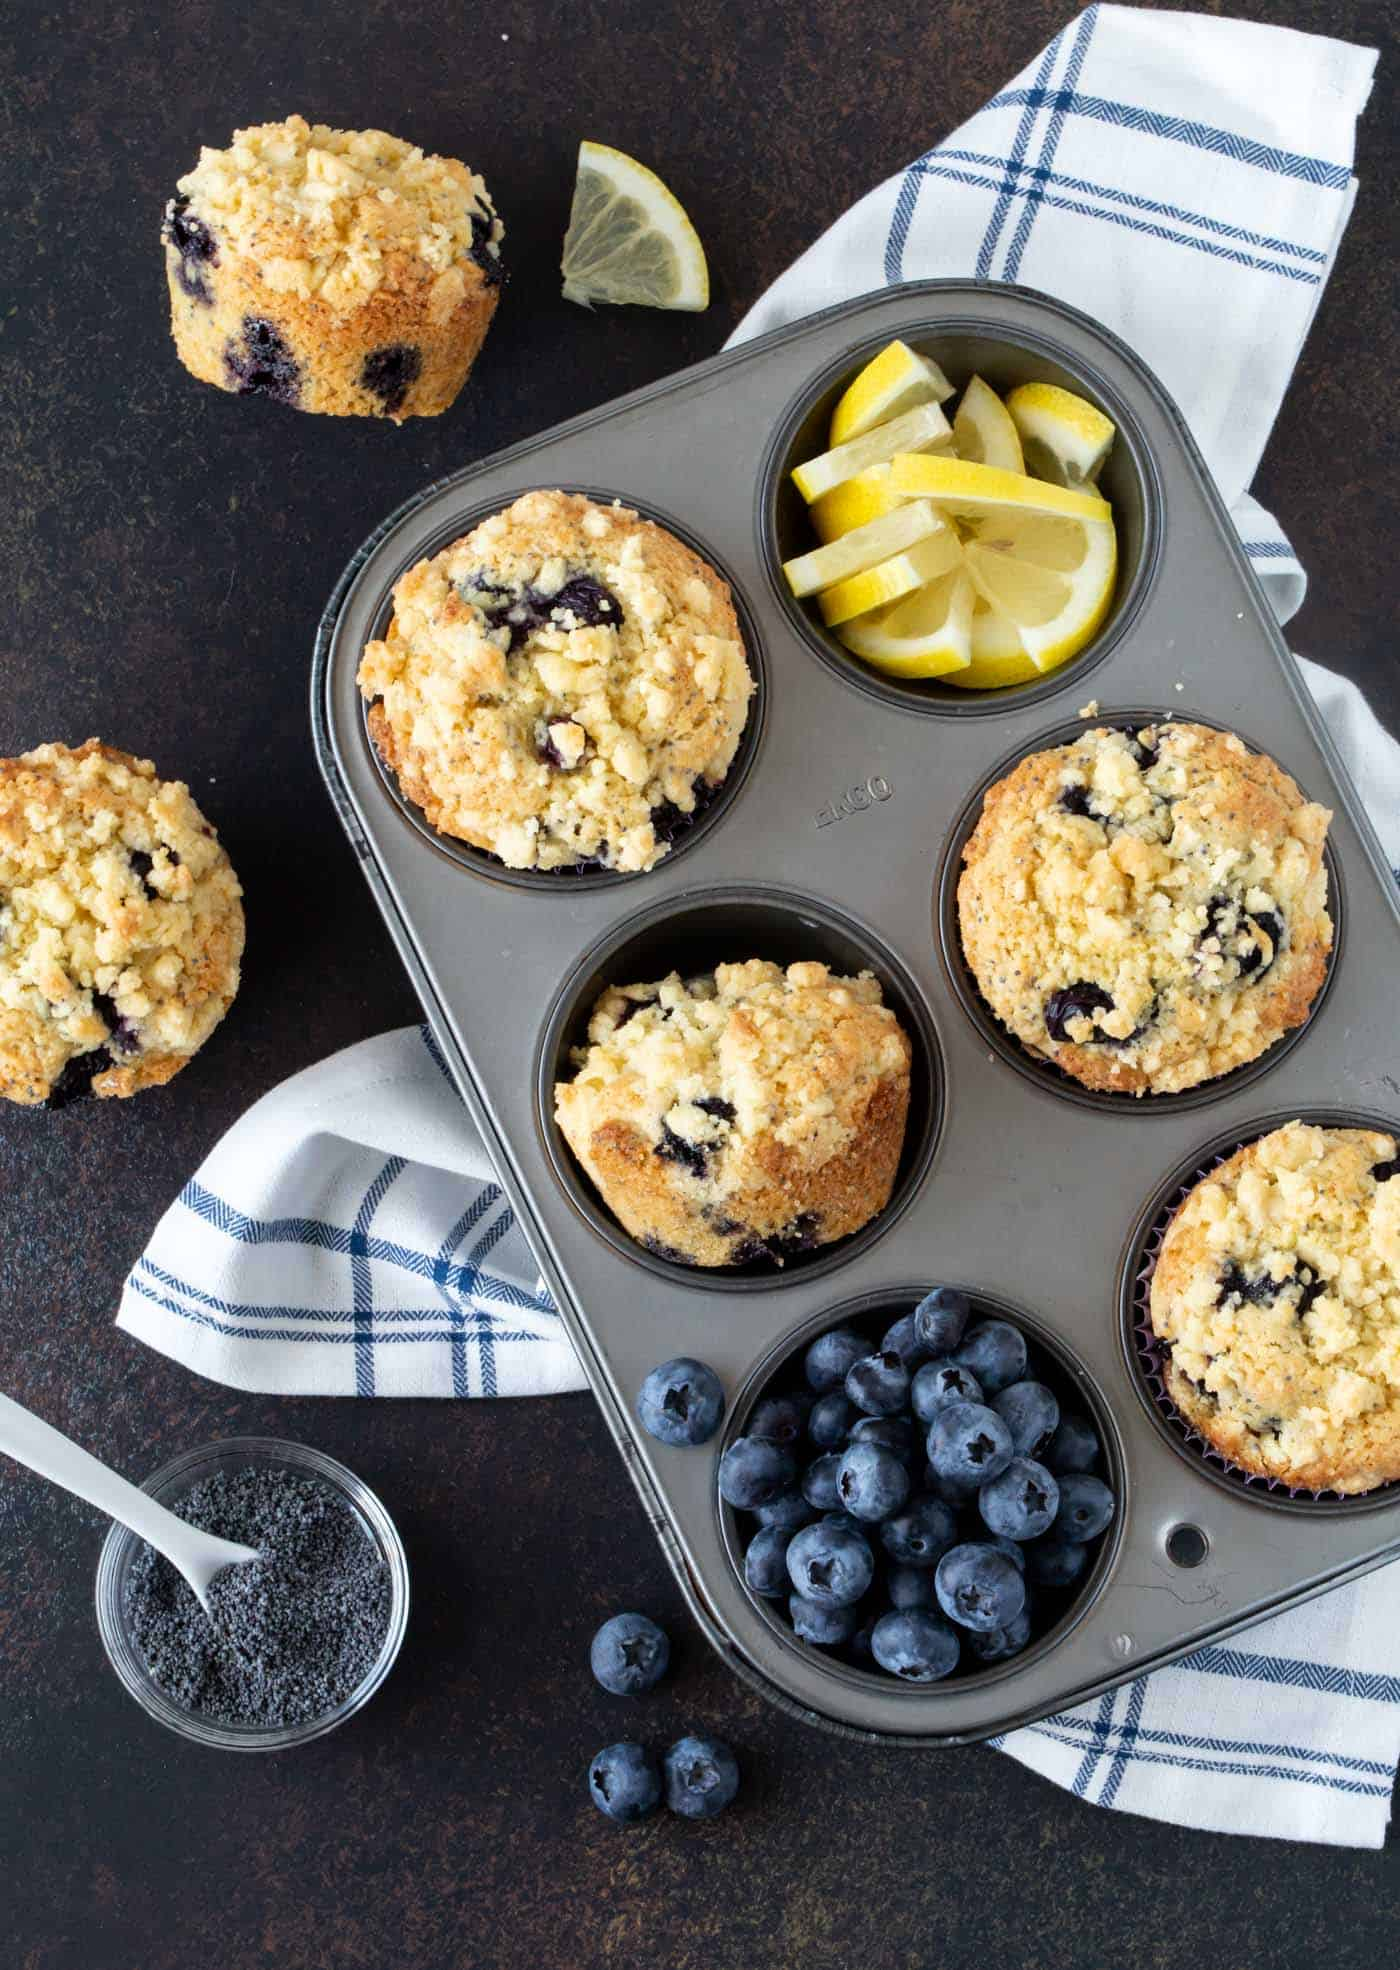 Muffin tin filled with four Blueberry Lemon Poppy Seed Muffins. Garnished with fresh blueberries and lemon slices.